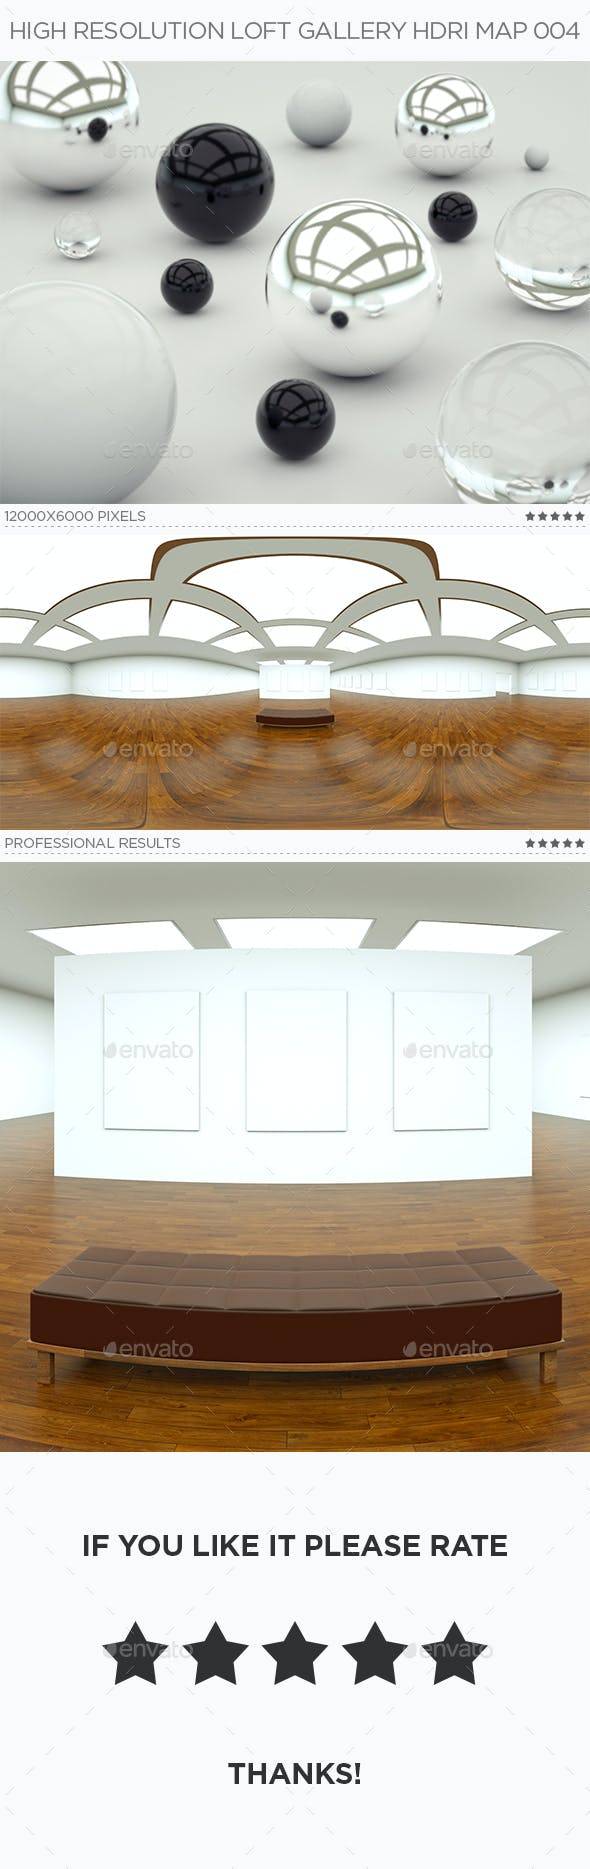 High Resolution Loft Gallery HDRi Map 004 - 3DOcean Item for Sale